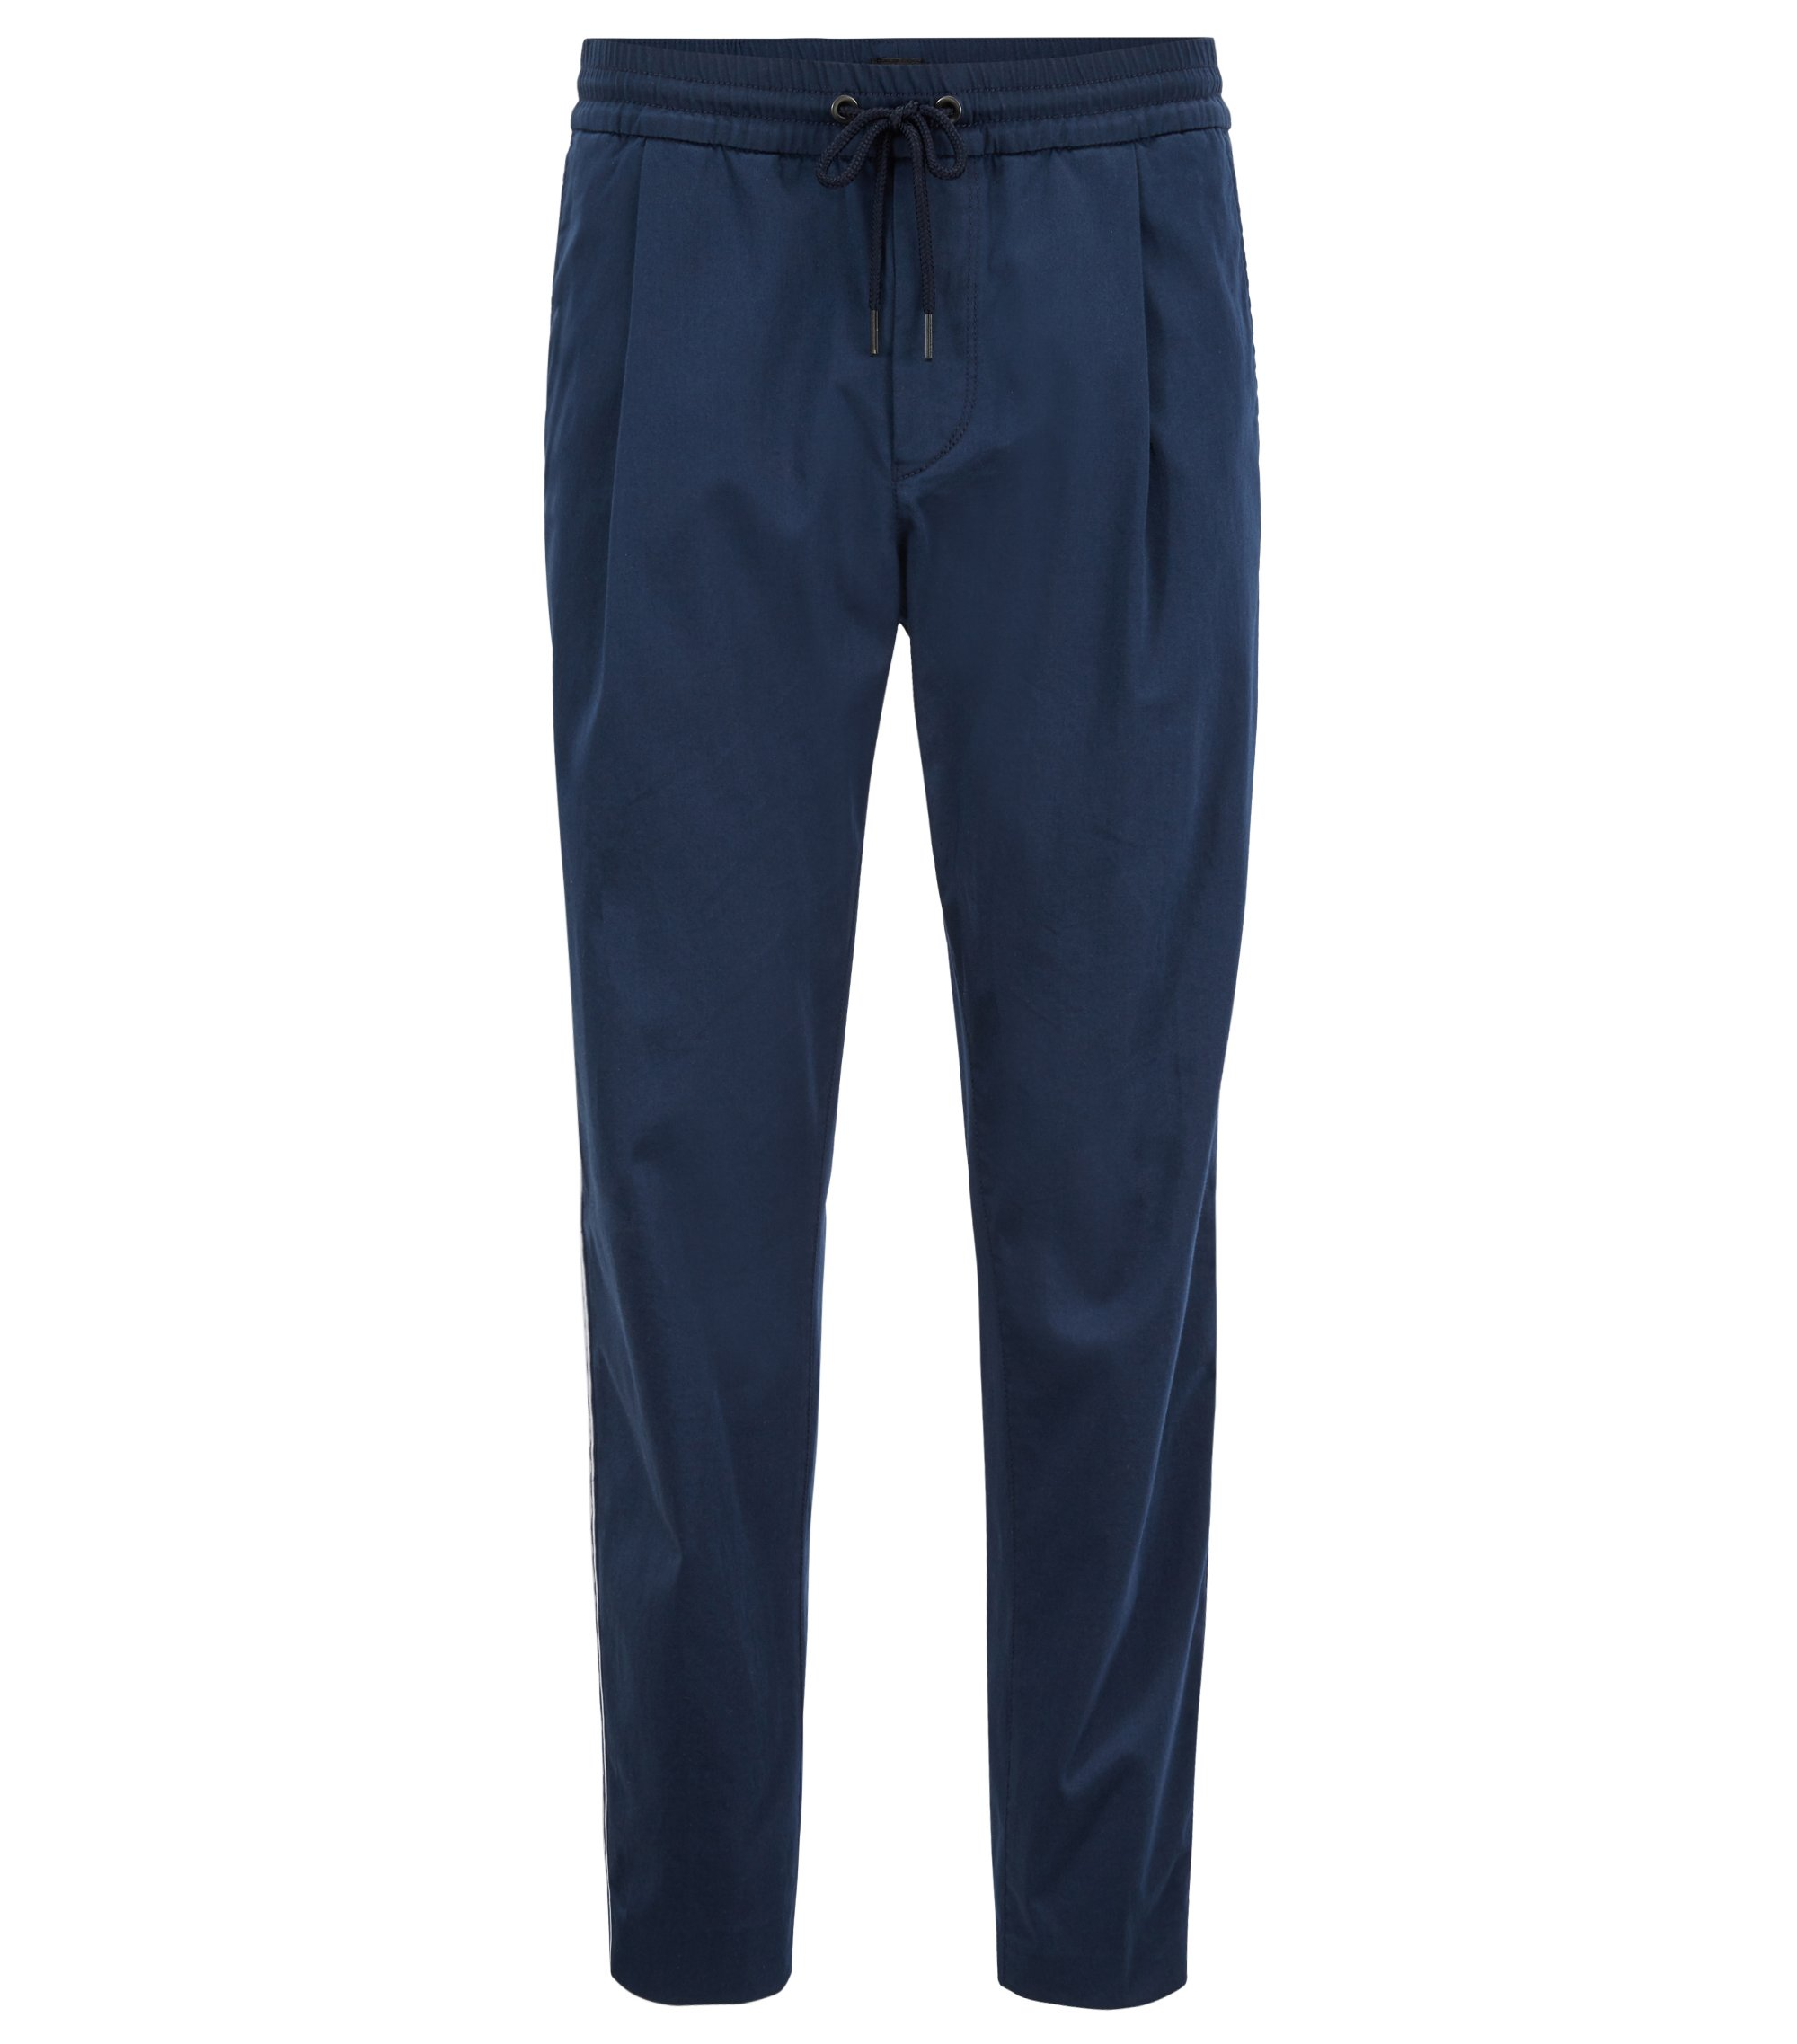 Pantalon Tapered Fit en coton stretch mélangé, Bleu foncé